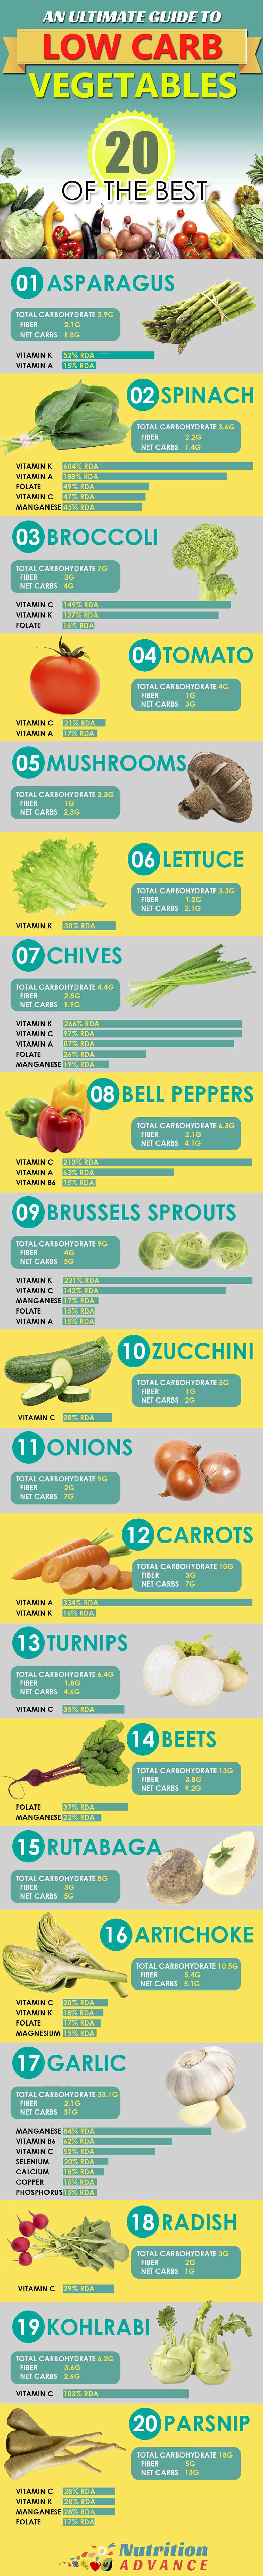 An infographic guide to low carb vegetables.